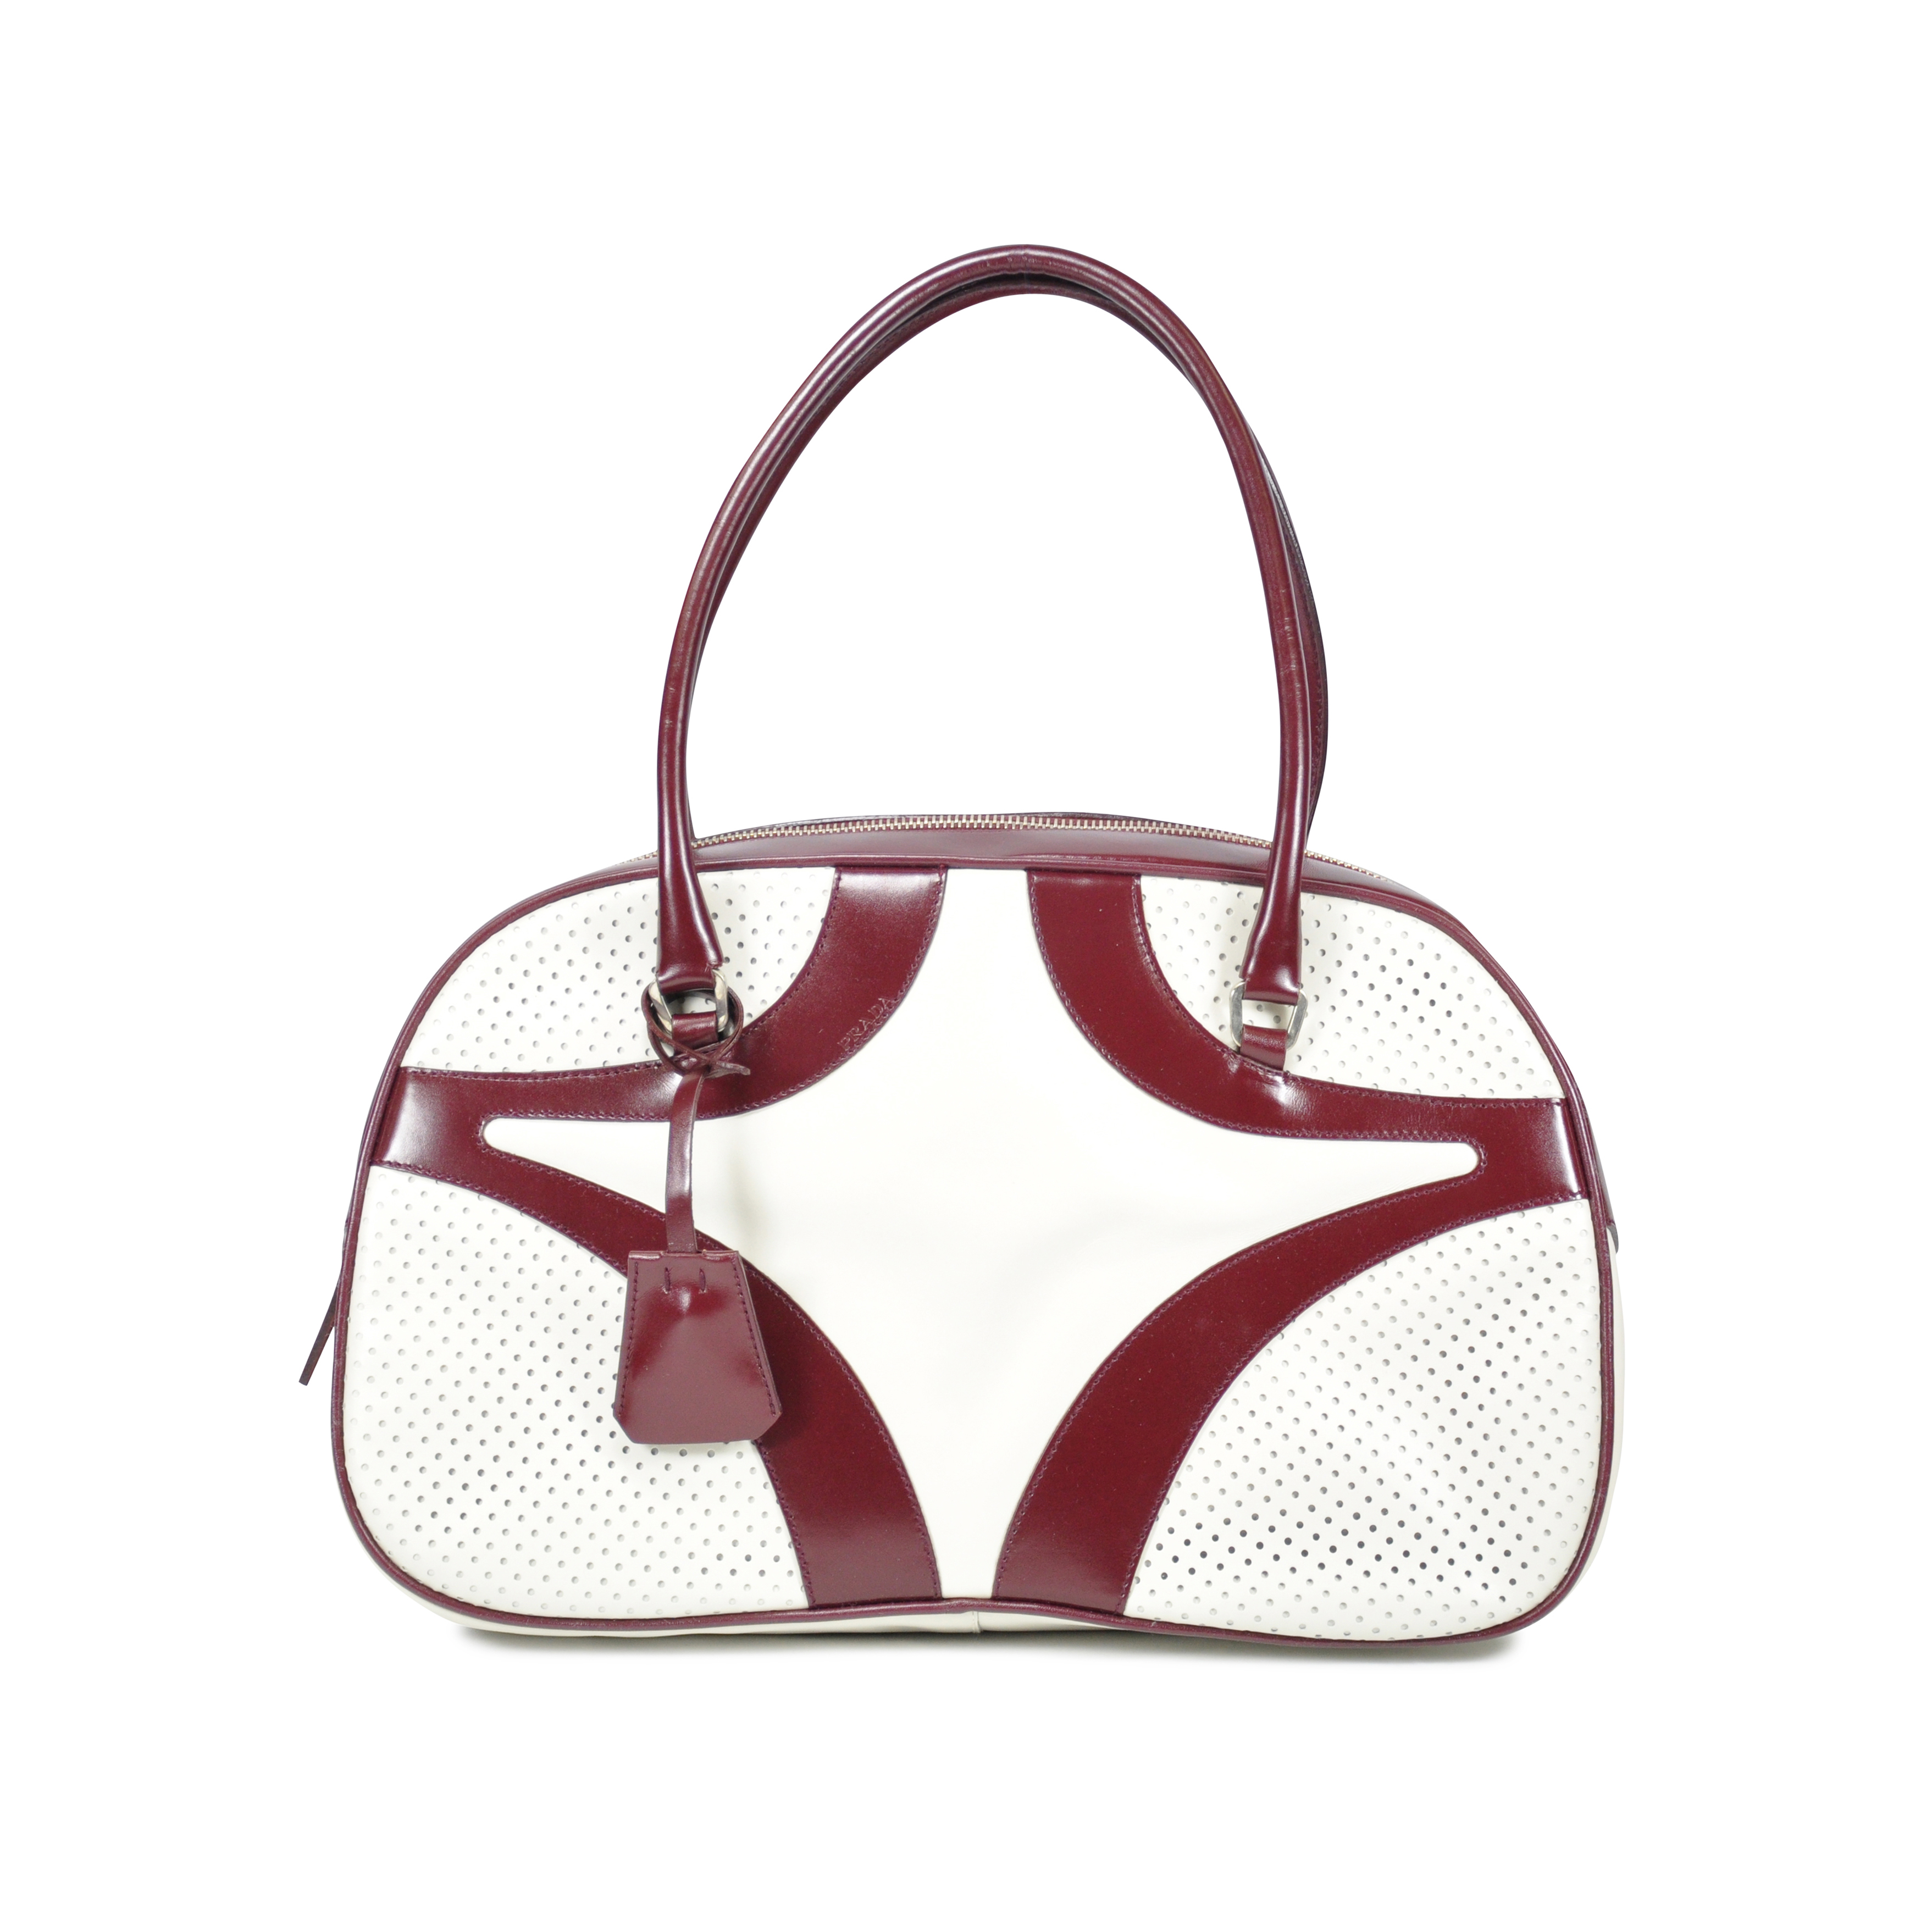 bbfe9d463786 Authentic Second Hand Prada Bowling Bag (PSS-047-00173) | THE FIFTH  COLLECTION